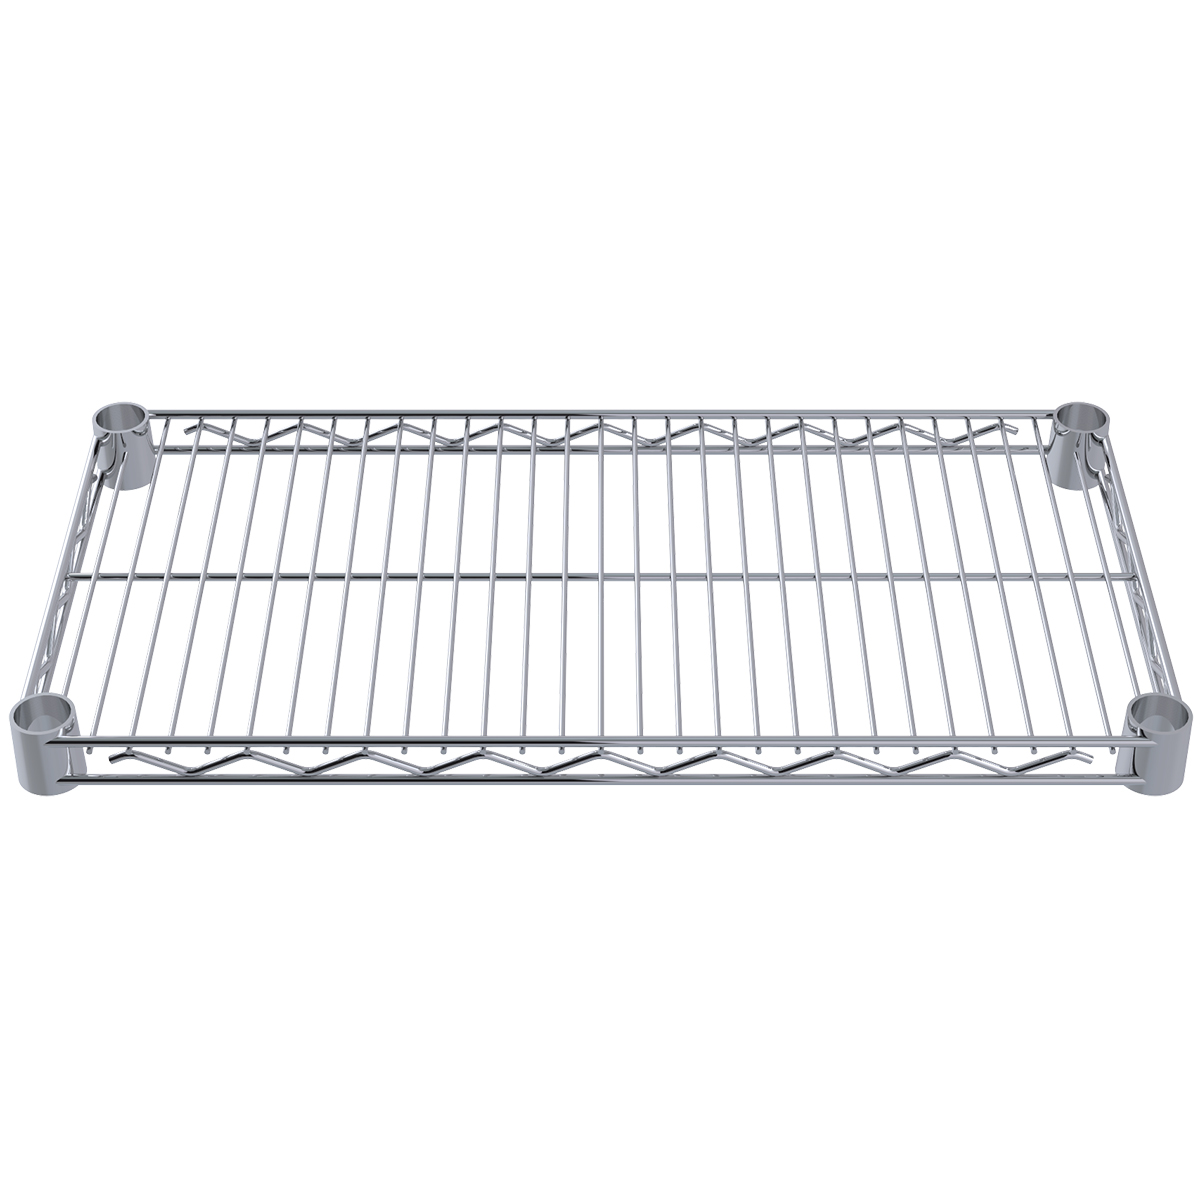 12 x 24 Wire Shelf, Chrome (AWS1224SHELF).  This item sold in carton quantities of 4.